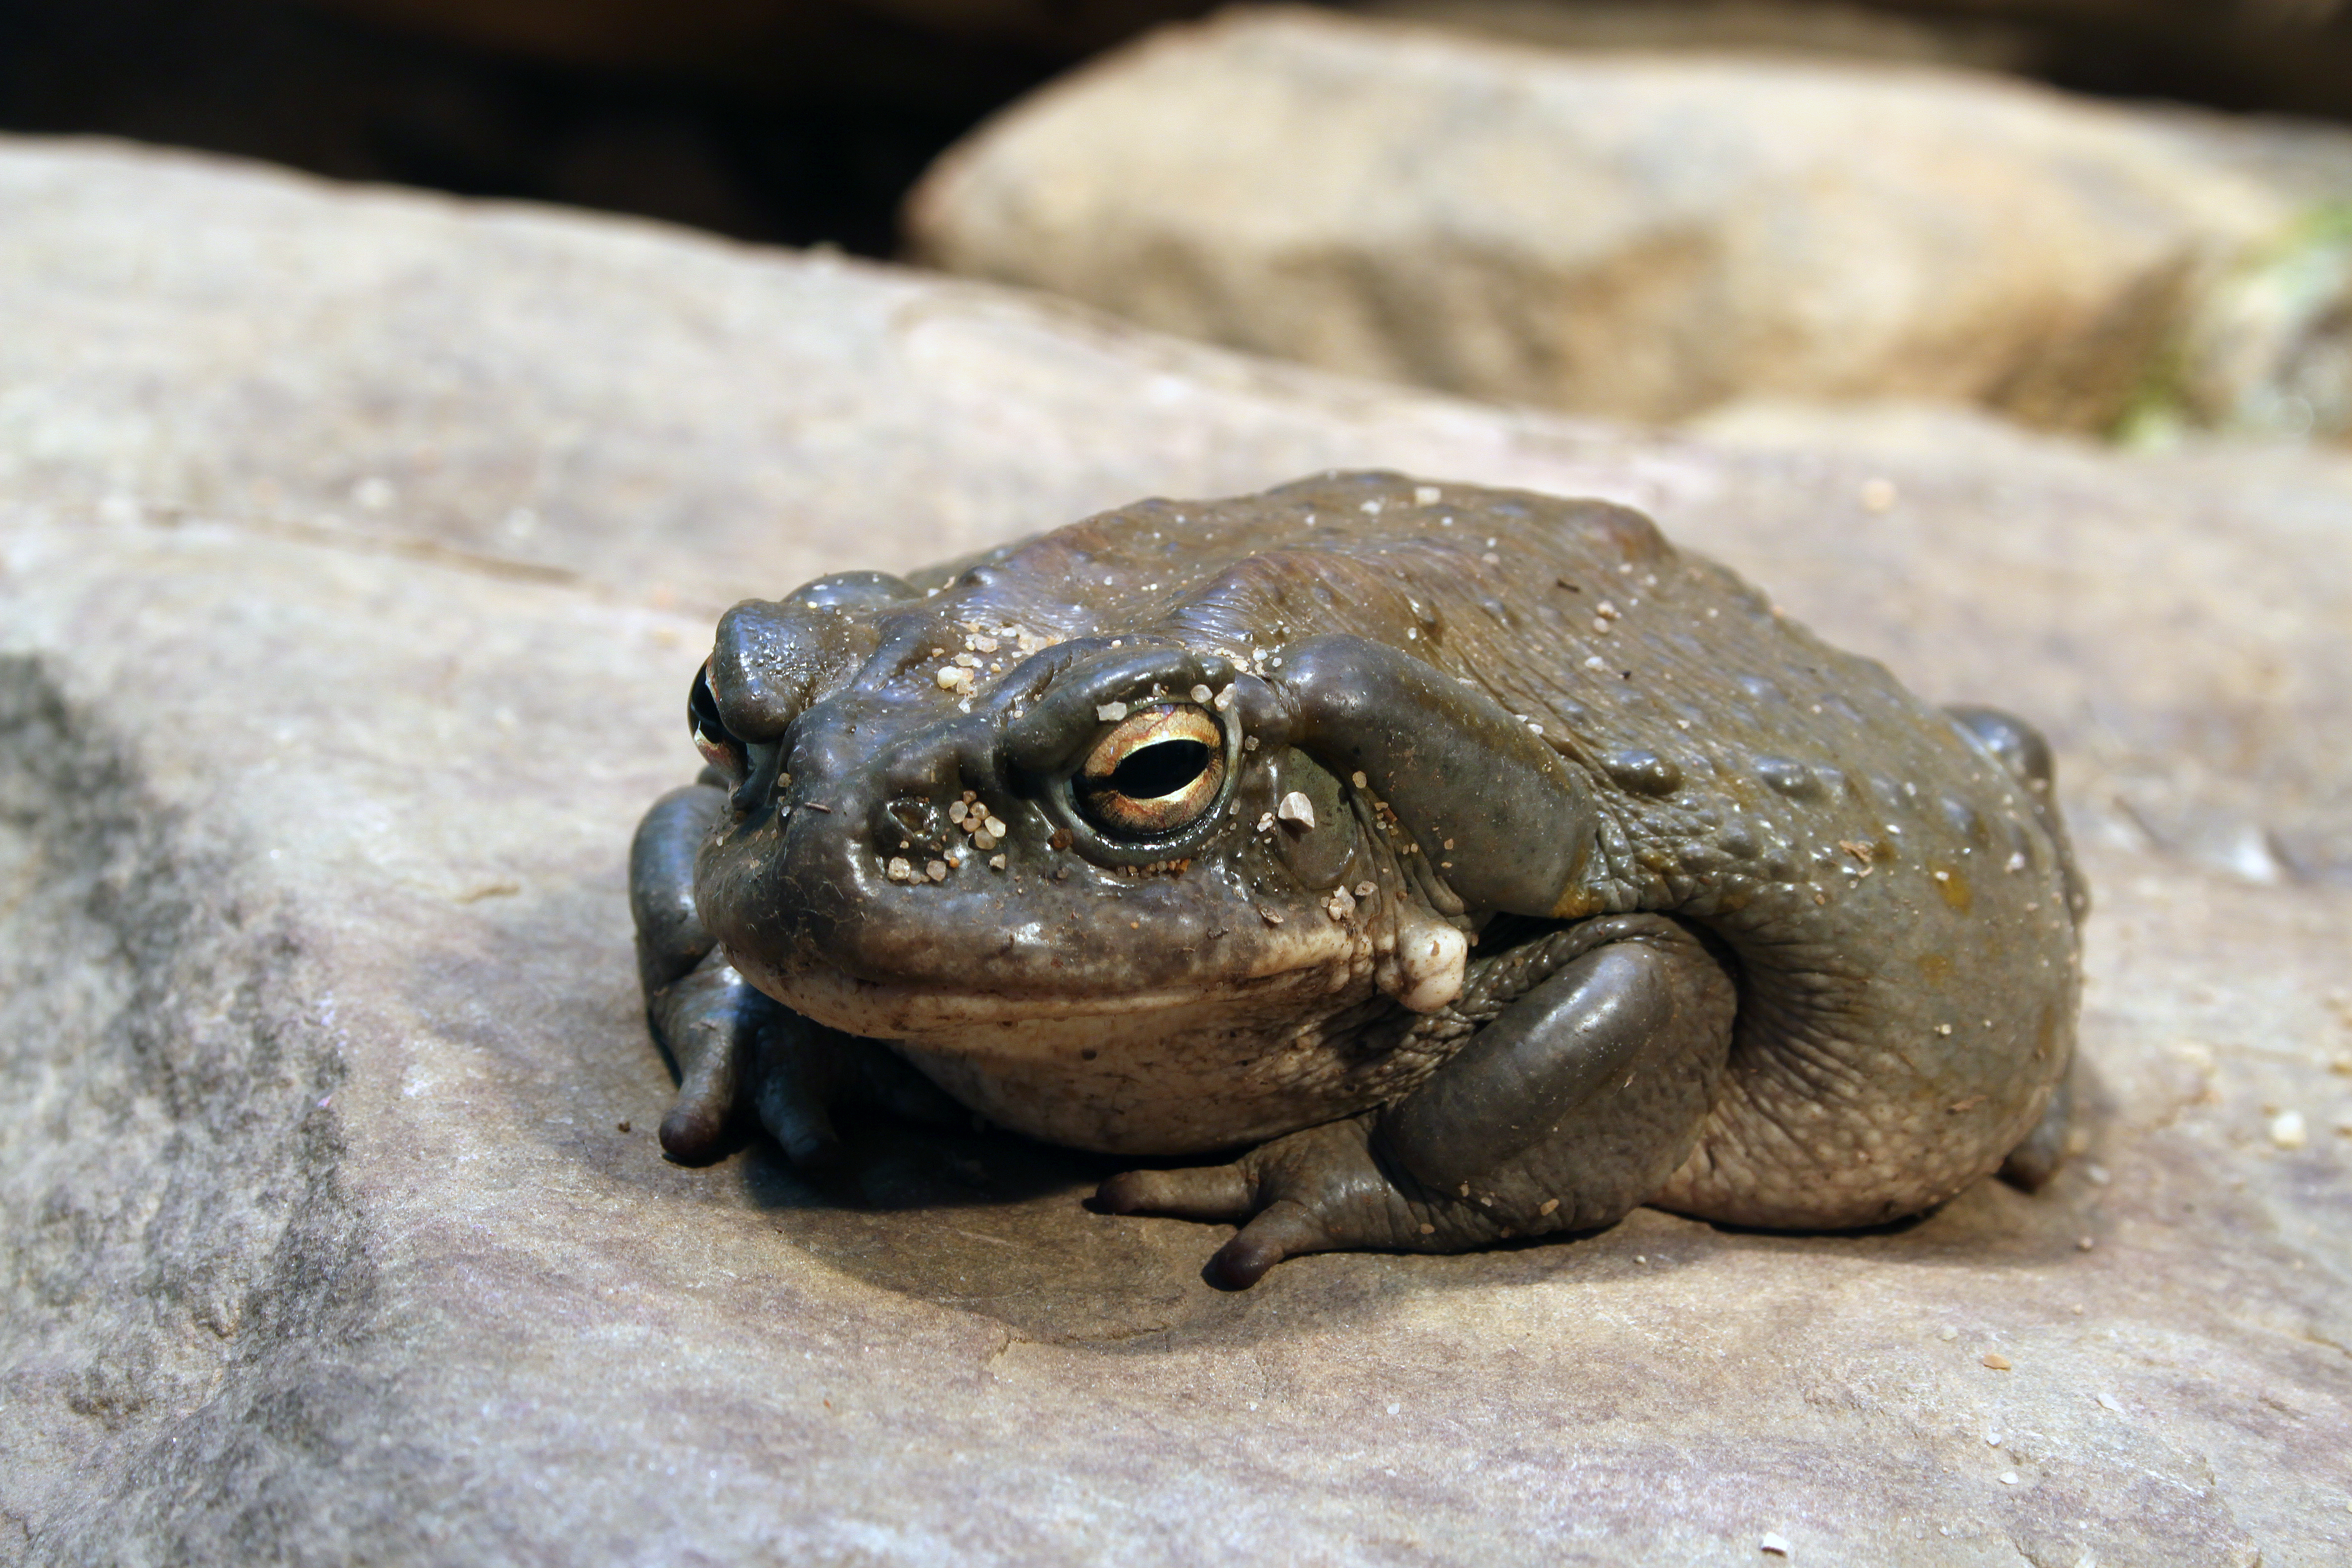 Commons:Featured pictures/Animals/Amphibians - Wikimedia Commons